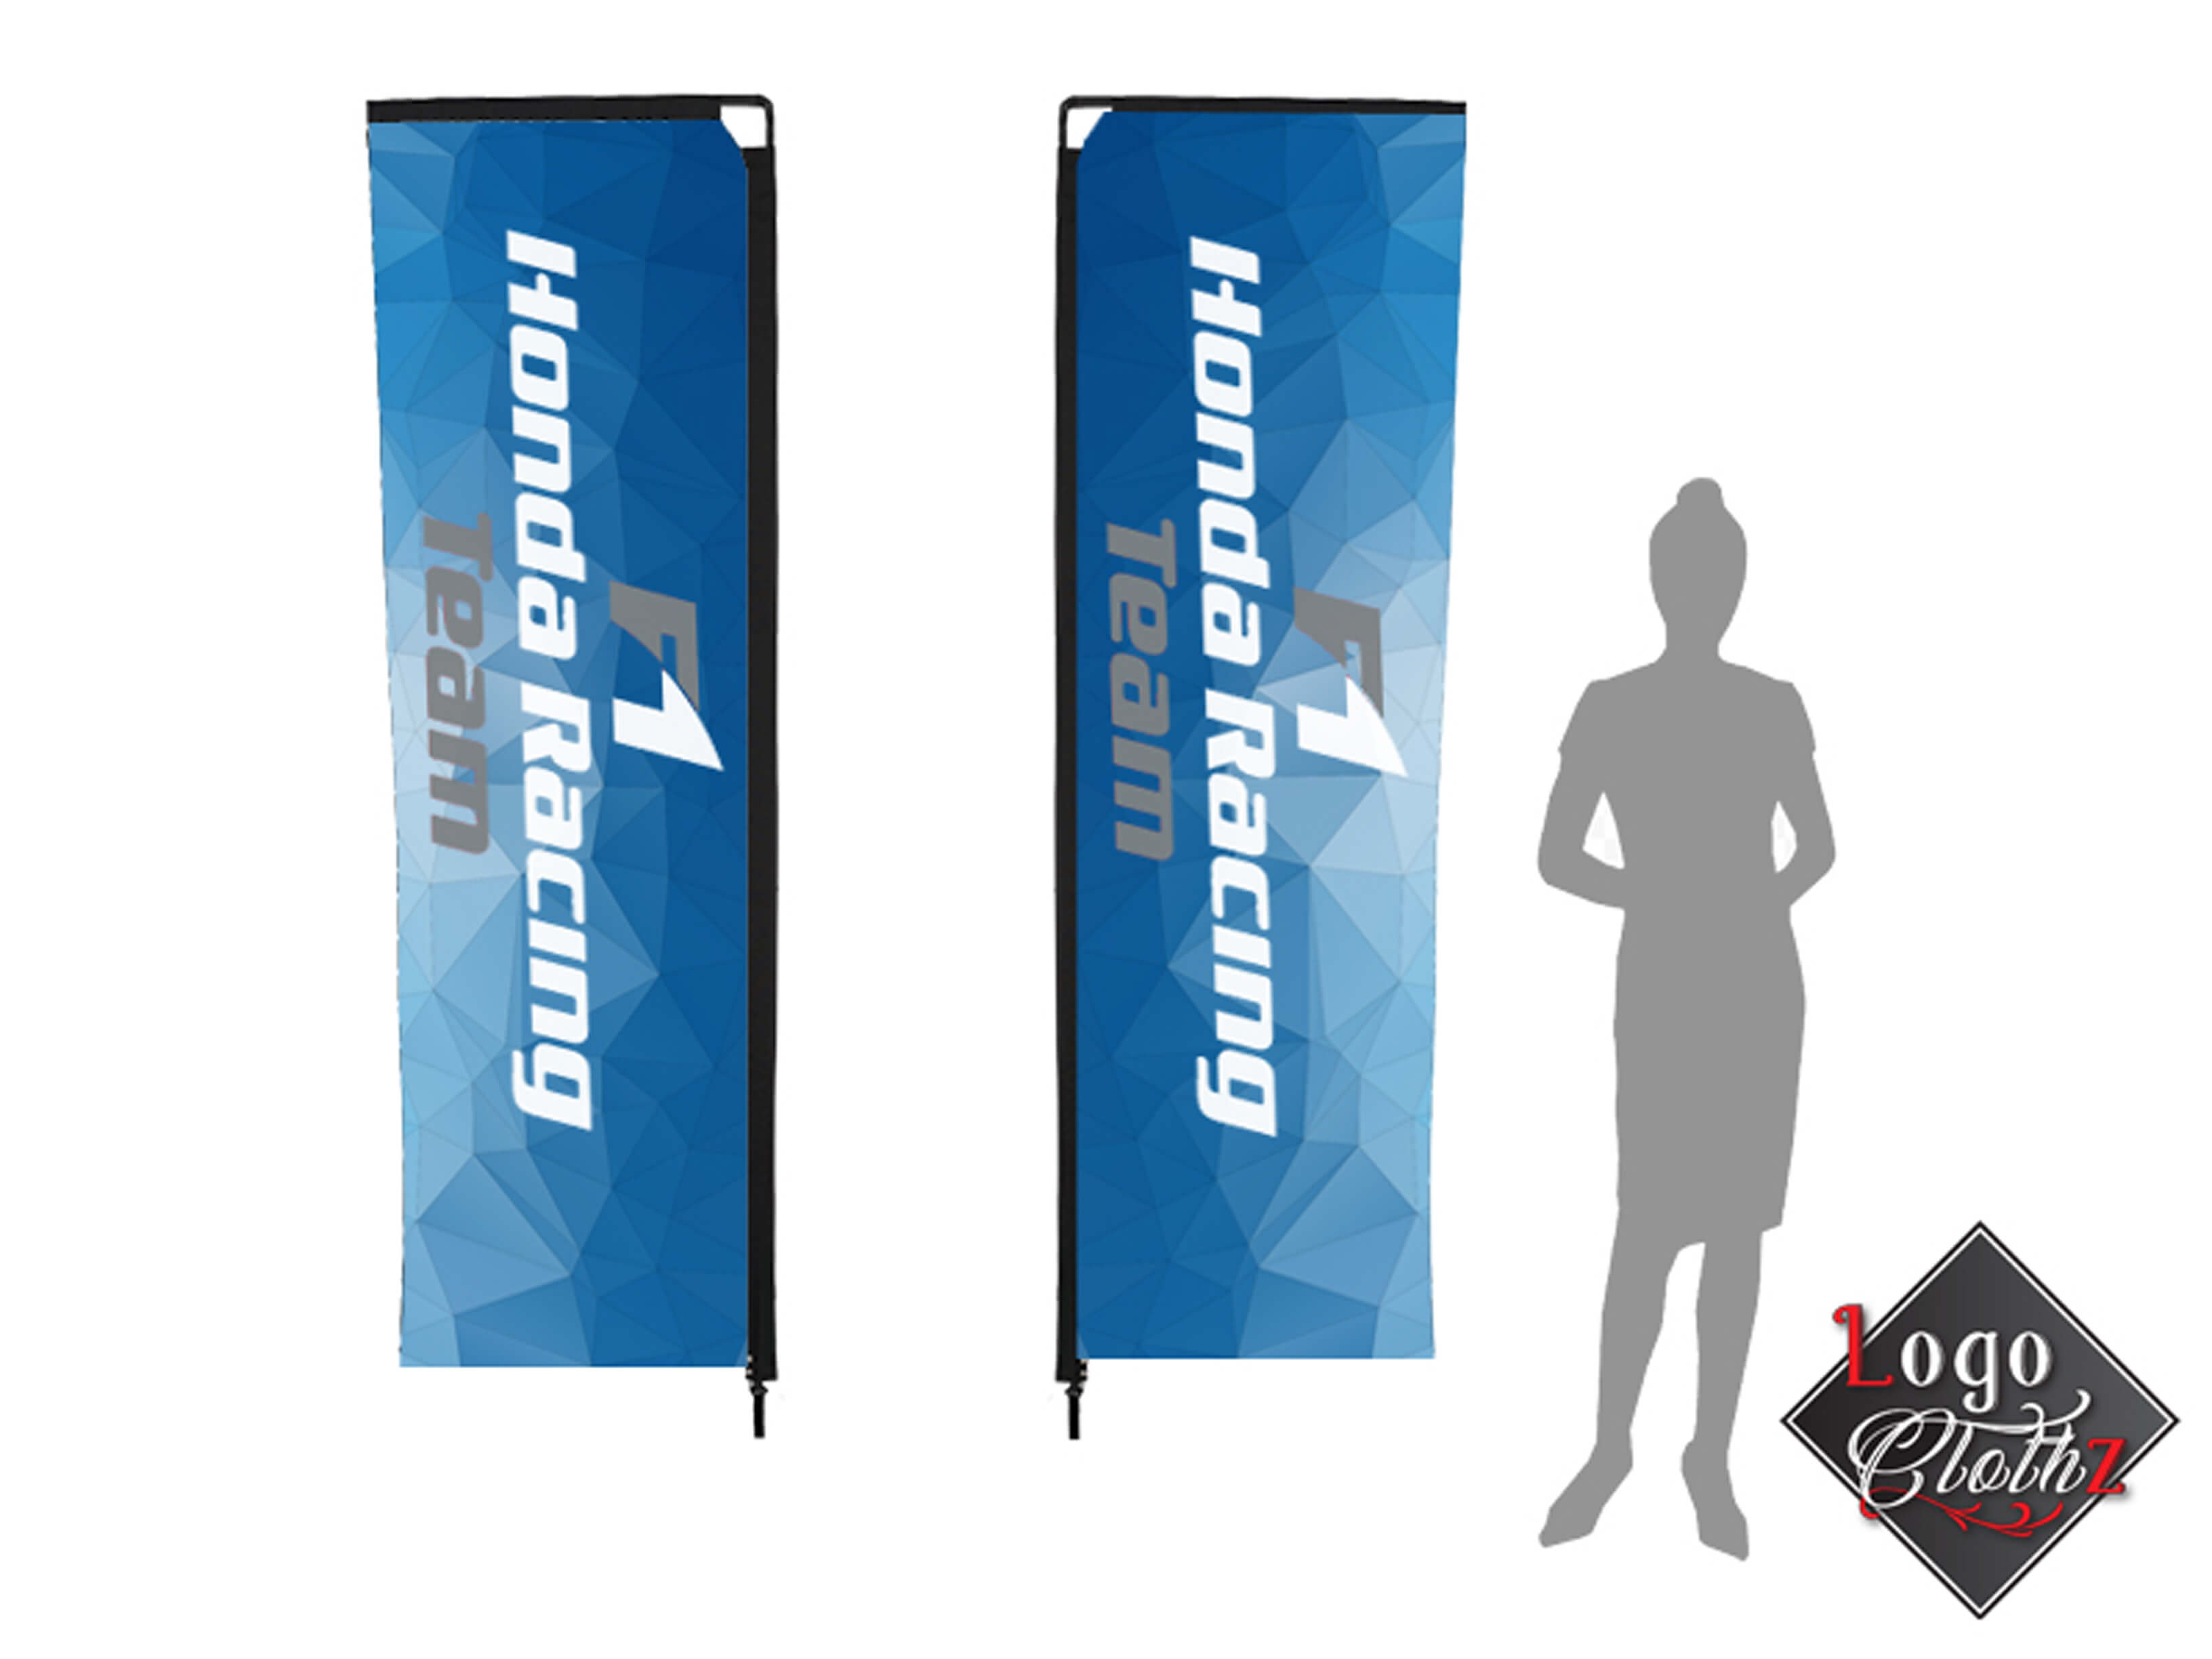 shadow lady standing by advertising flags